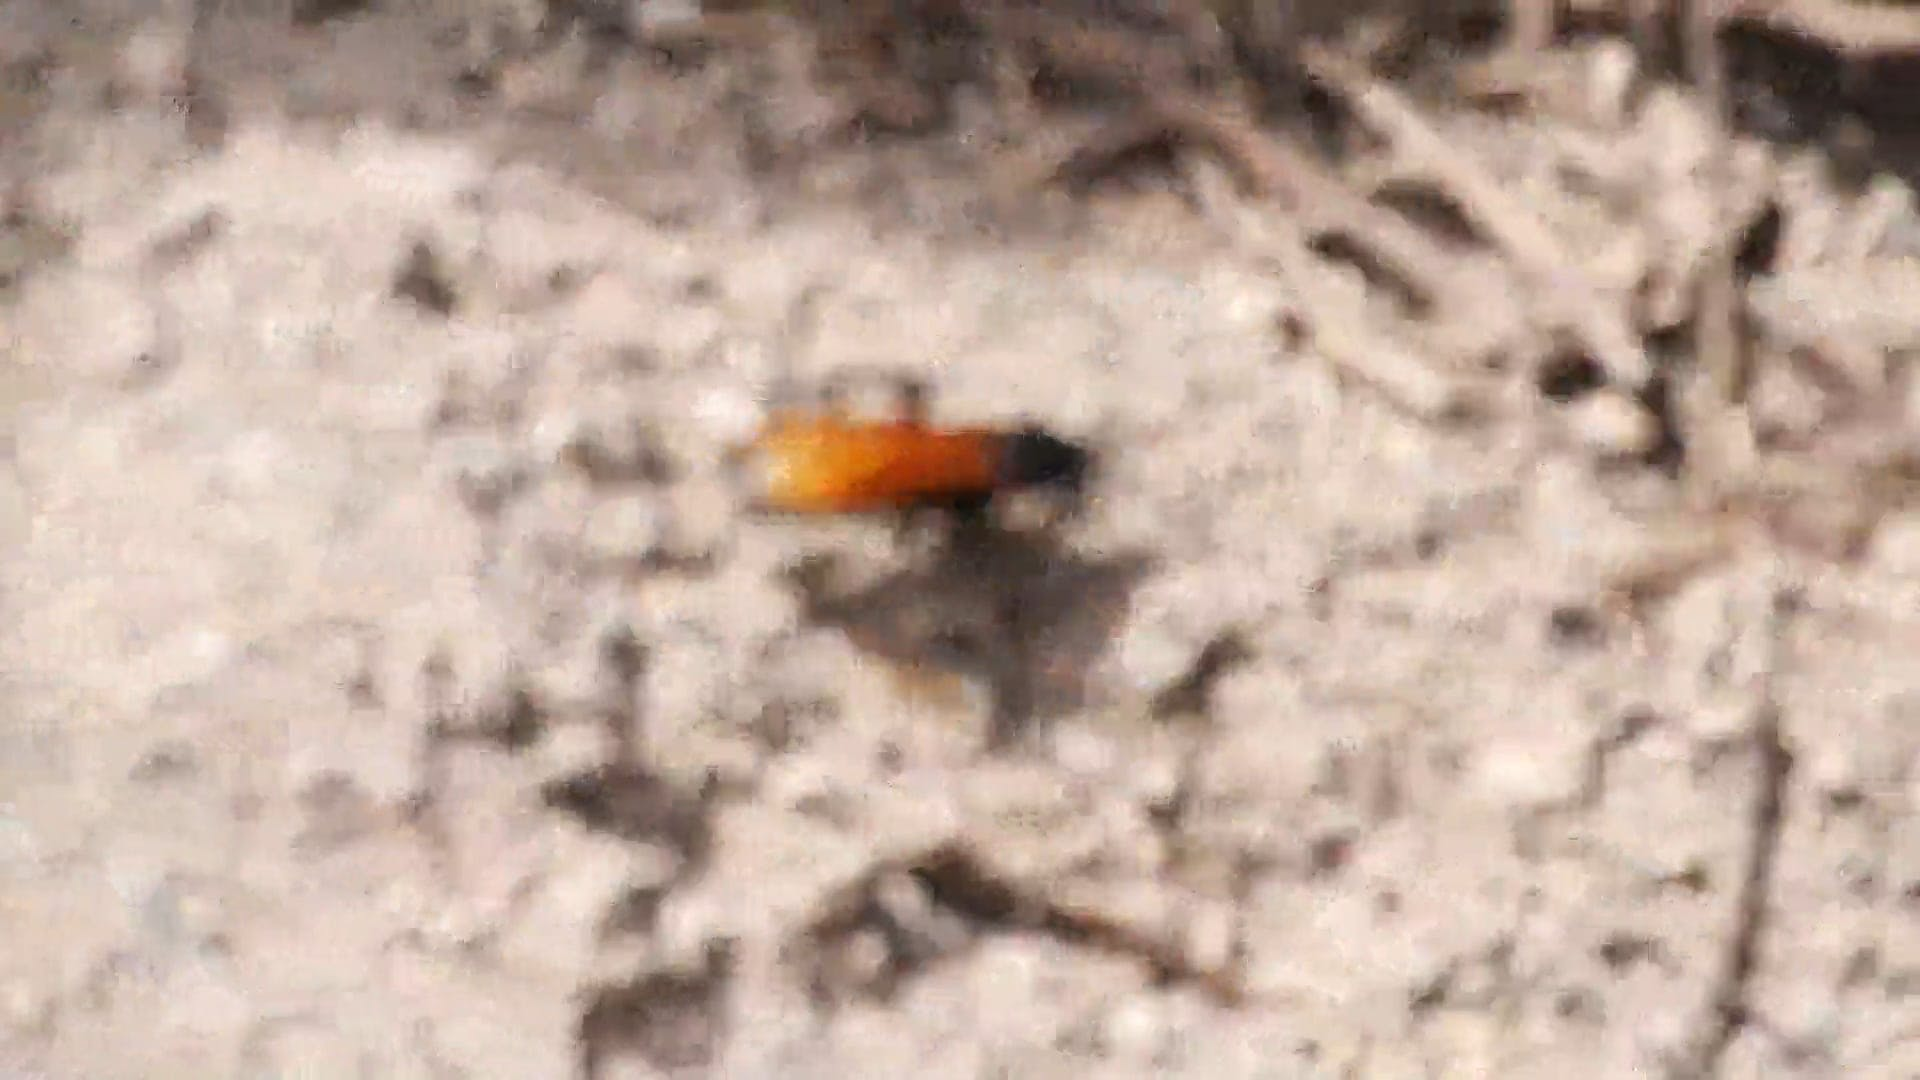 Crawling Insect